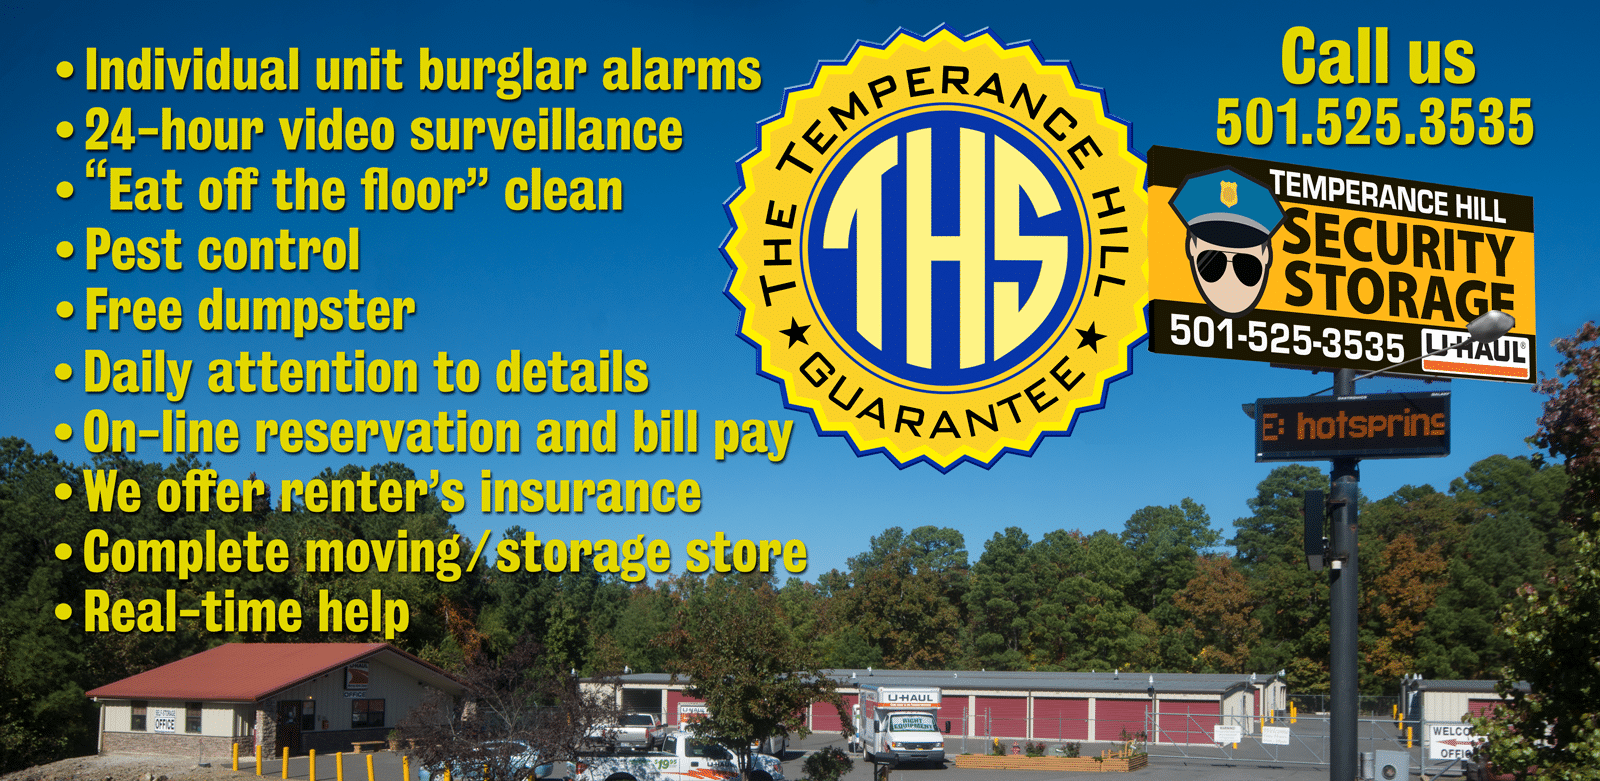 temperance-hill-security-storage-front-page-updated